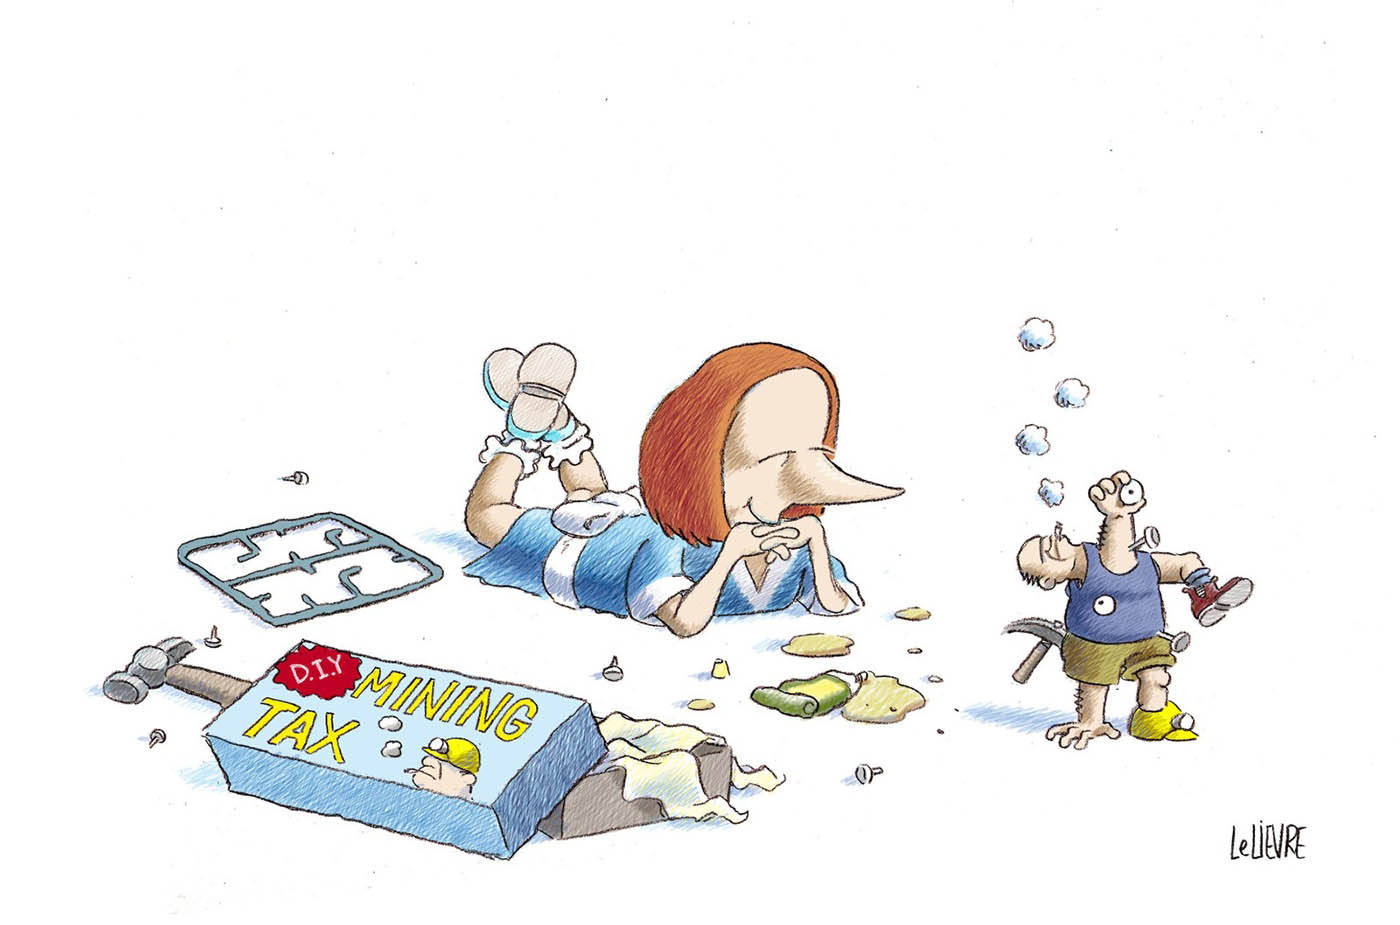 A colour cartoon depicting Julia Gillard as a young girl. She is lying on the ground, on her stomach, in a blue dress. To the left of her is scattered the contents of a model kit. The open box lies nearby; it says 'D.I.Y. Mining Tax' on the lid. A hammer and an open tube of glue lie near. To the right of Gillard is the model, which is supposed to represent a miner, in a blue singlet and khaki shorts. The miner has been assembled in an ad hoc manner. An arm sticks up where the neck should be; the head protrudes from the right arm socket; a leg protrudes from the left arm socket; an arm protrudes from the right leg of the shorts; an eyeball is stuck to the front of the singlet; the arm sticking up where the head should be holds an eyeball in its hand. Gillard looks at her creation with an expression of satisfaction.  - click to view larger image